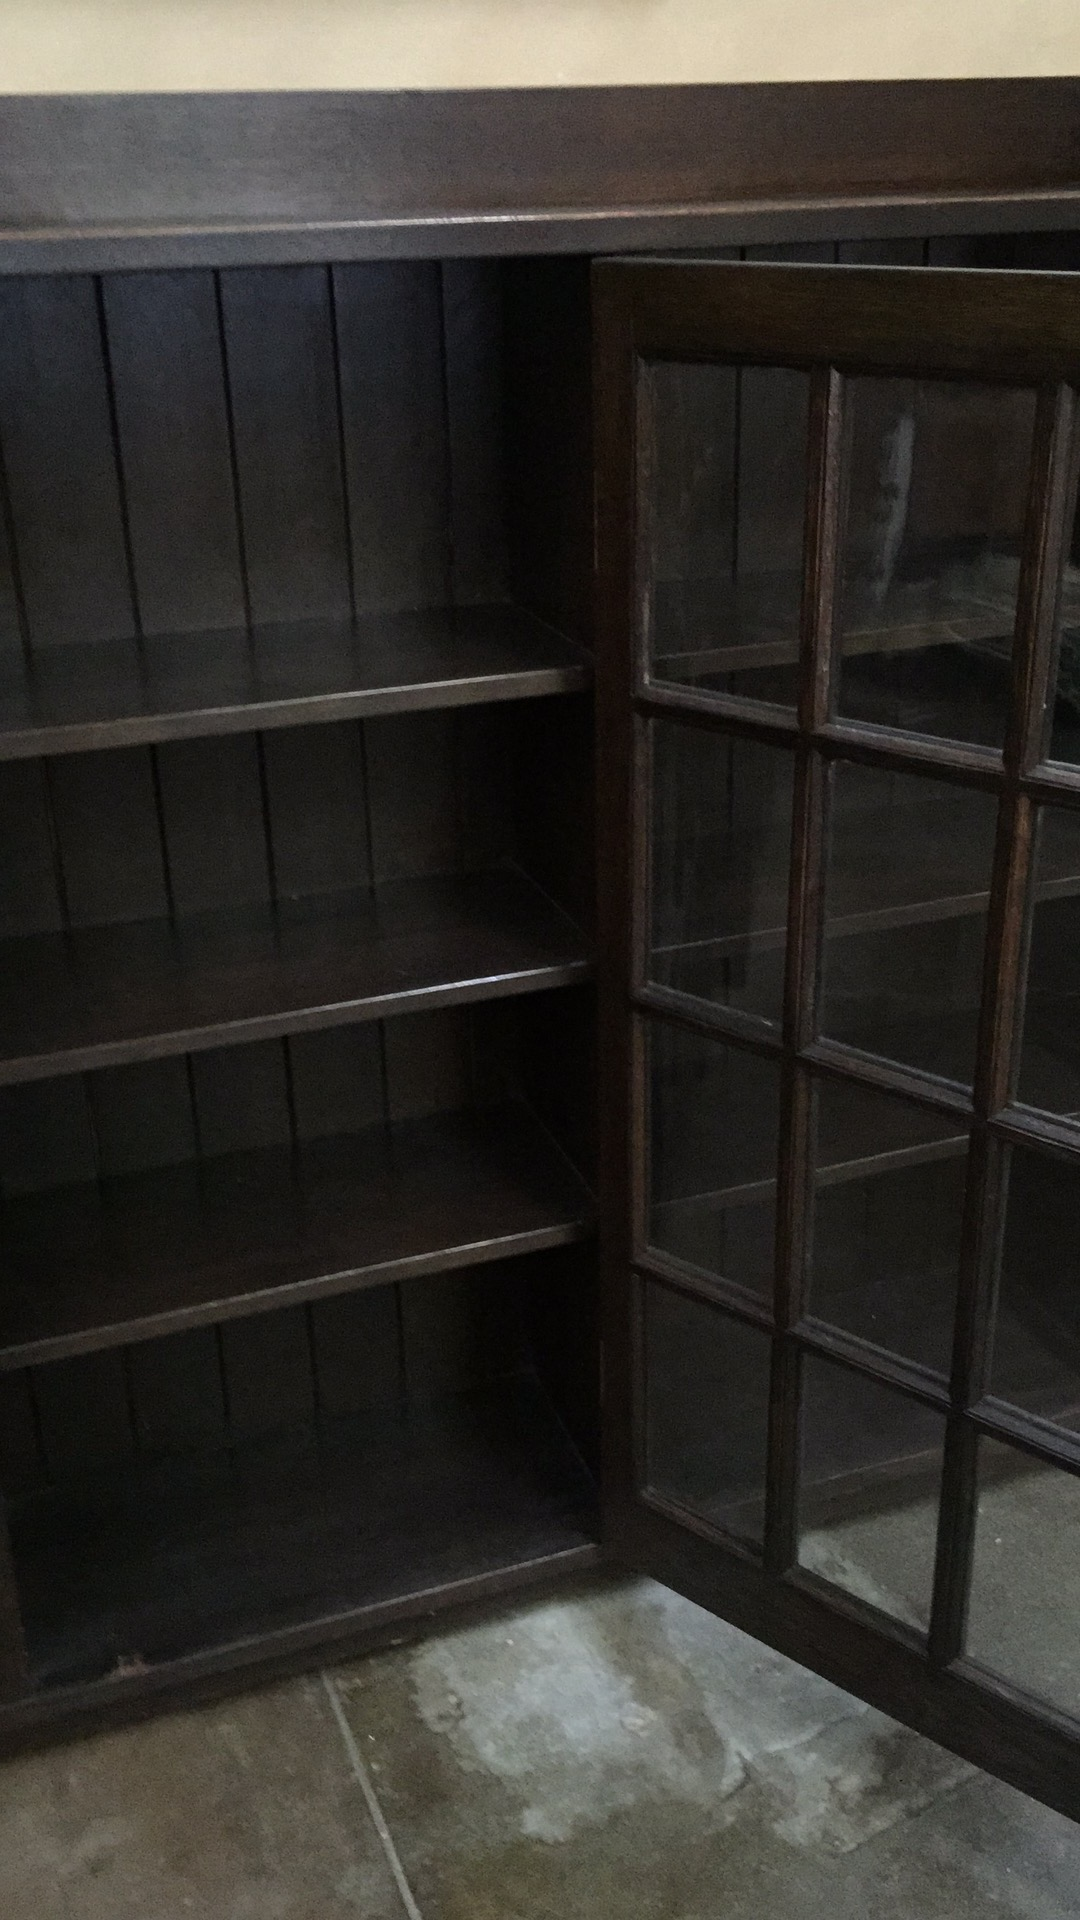 stickley furniture triple bookcase with glass doors